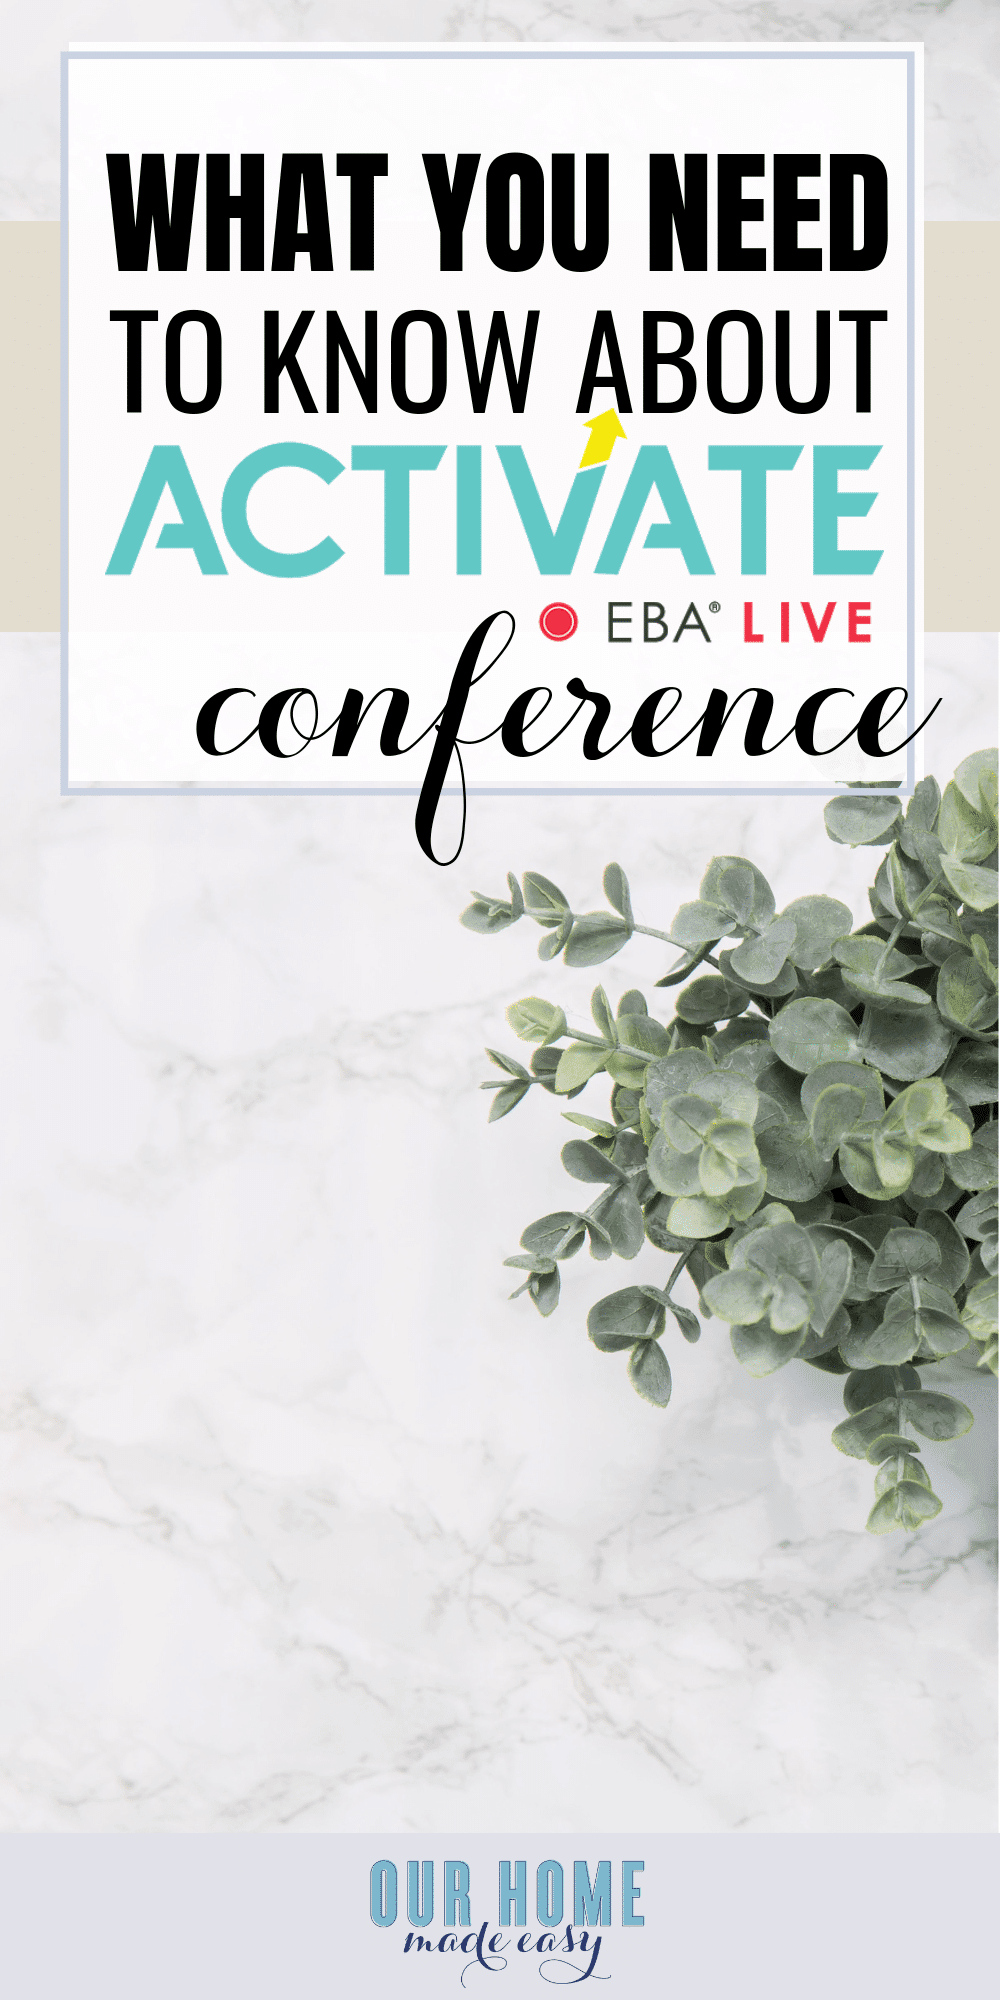 Learn more about Elite Blog Academy's Activate conference! Here is what I learned from the event and why it's so important to attend blogging conferences! #blogger #eba #blog #business #conference #bloggers